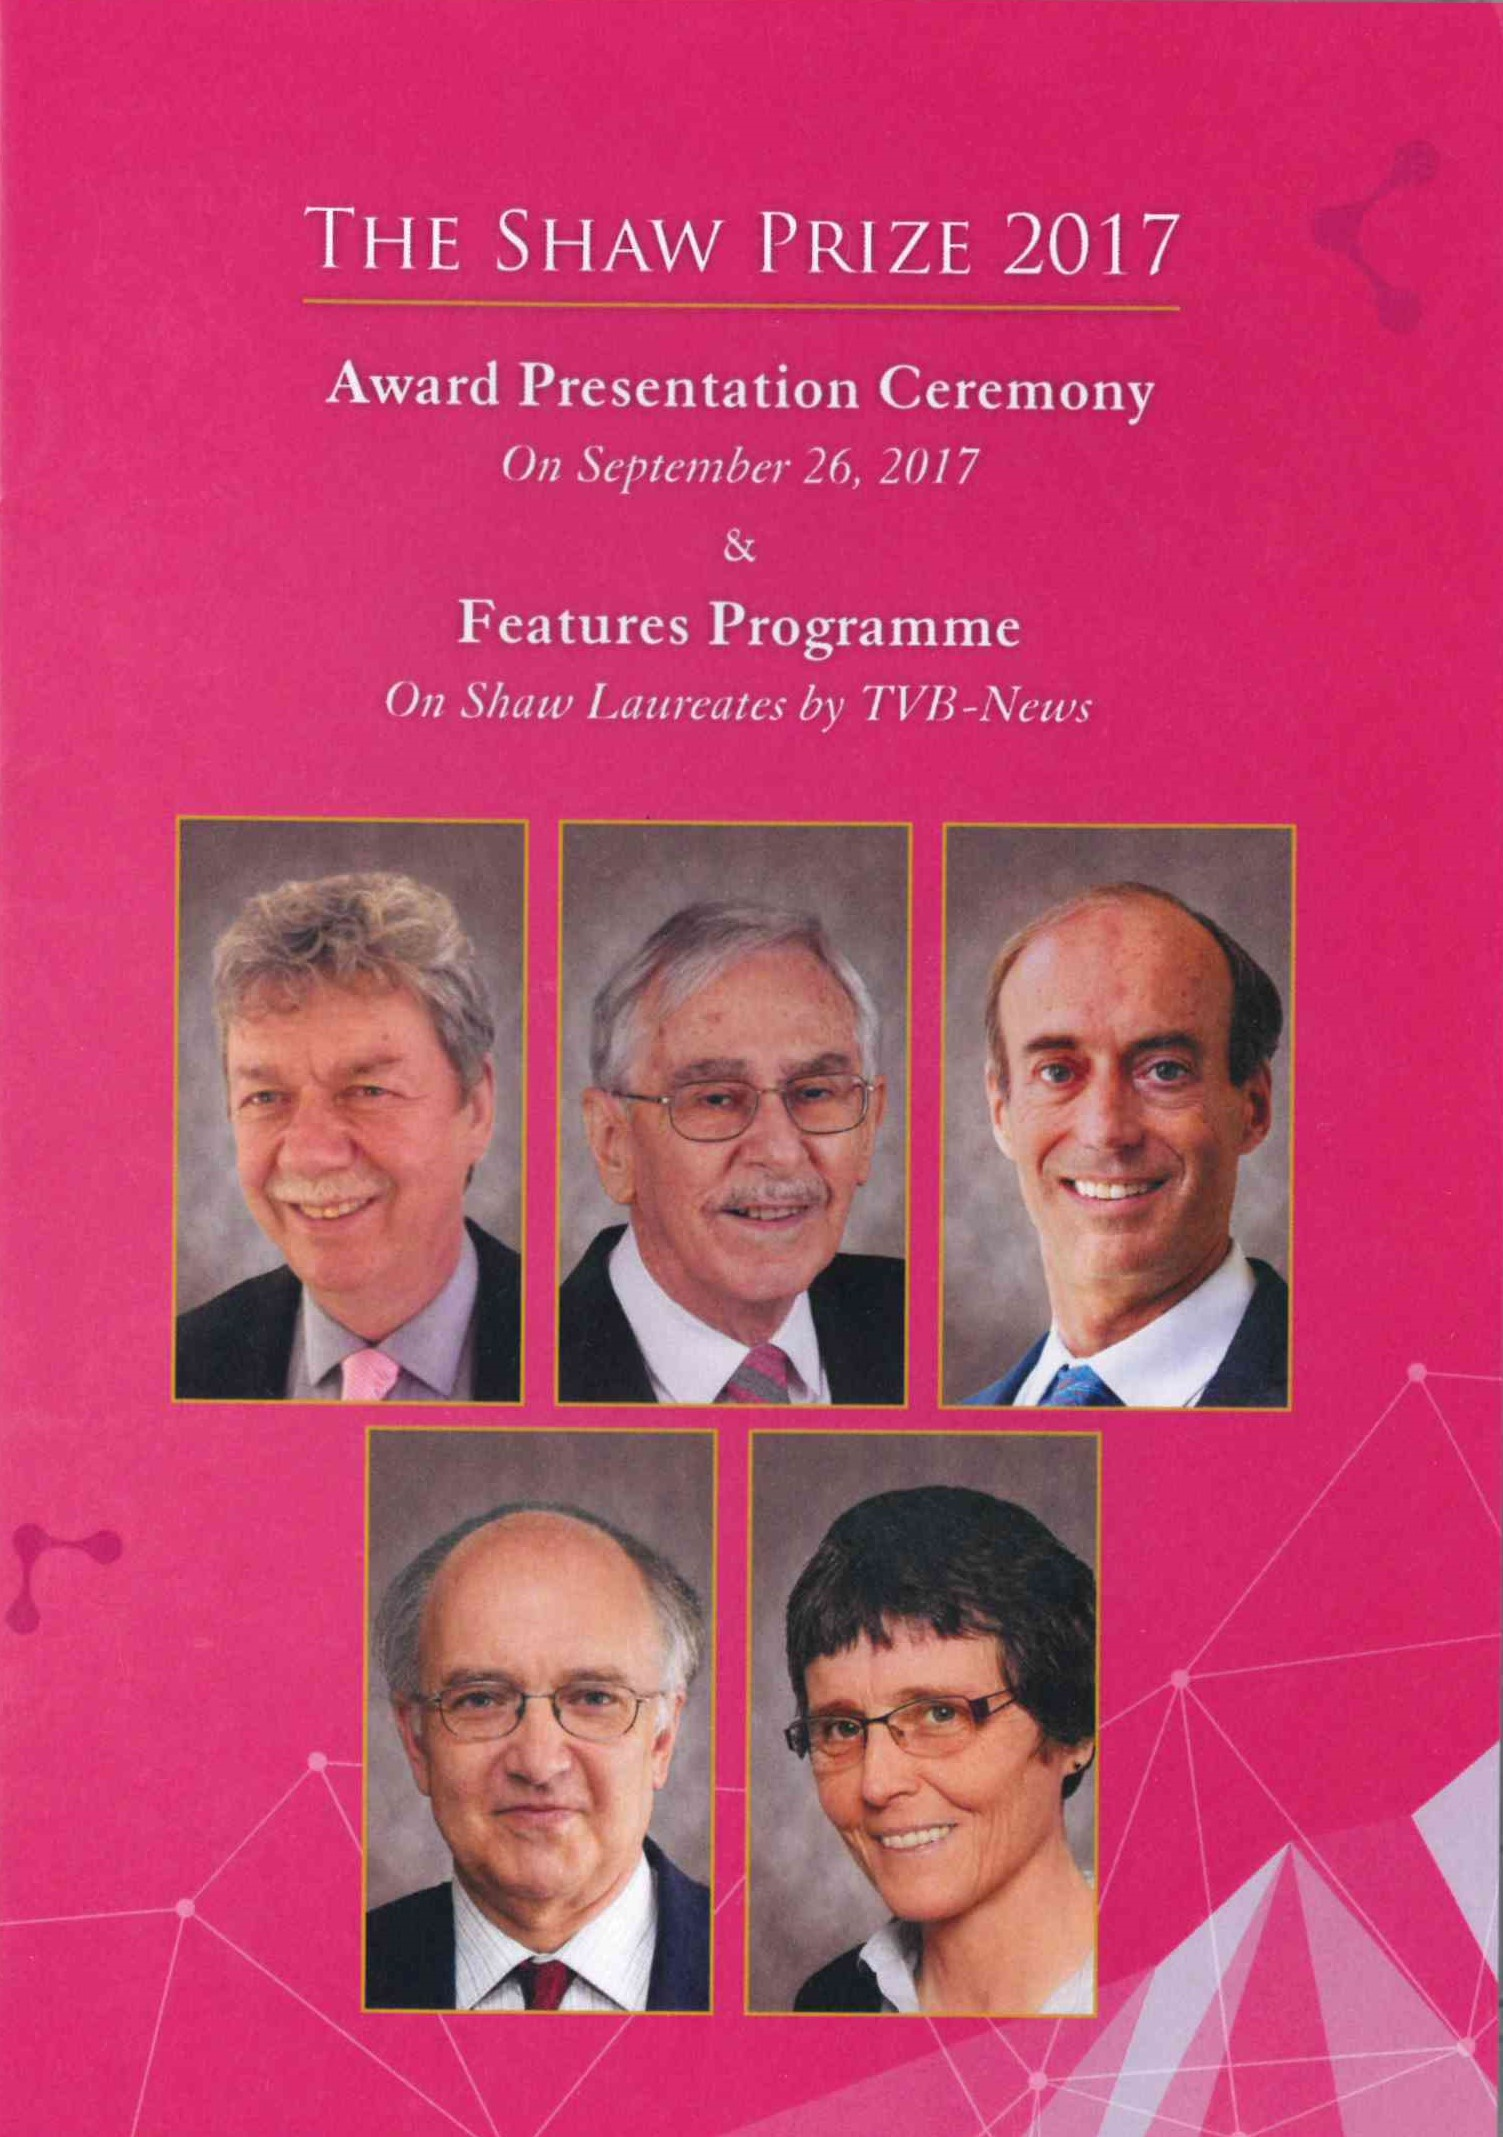 The Shaw Prize 2017 award presentation ceremony on September 26, 2017 & features programme on Shaw laureates by TVB-News